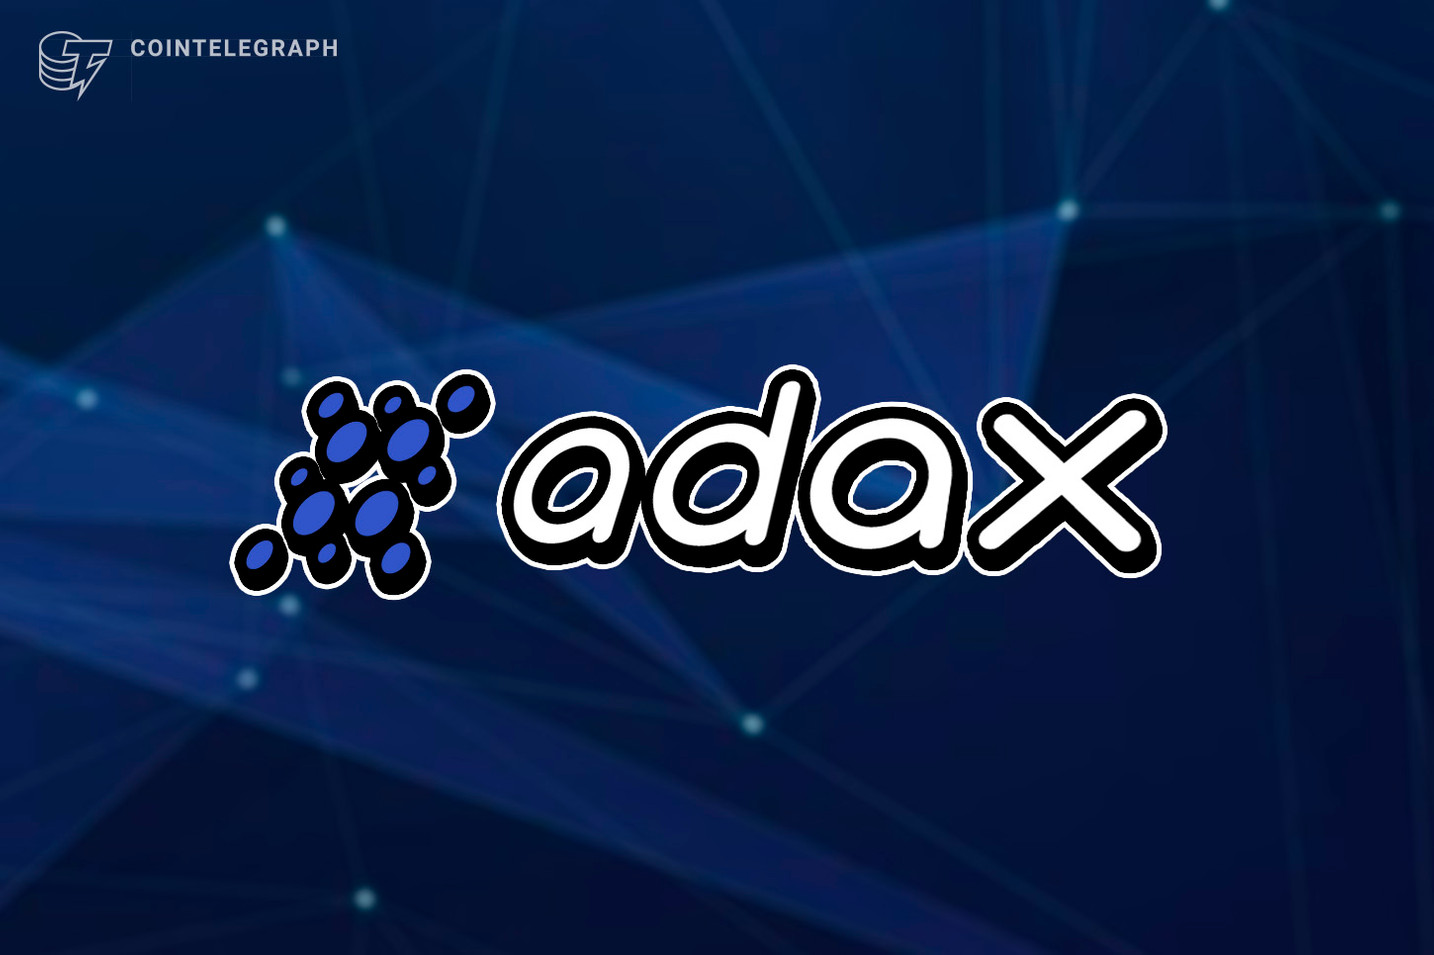 ADAX appoints Mate Tokay, co-founder of Bitcoin.com, as a strategic advisor